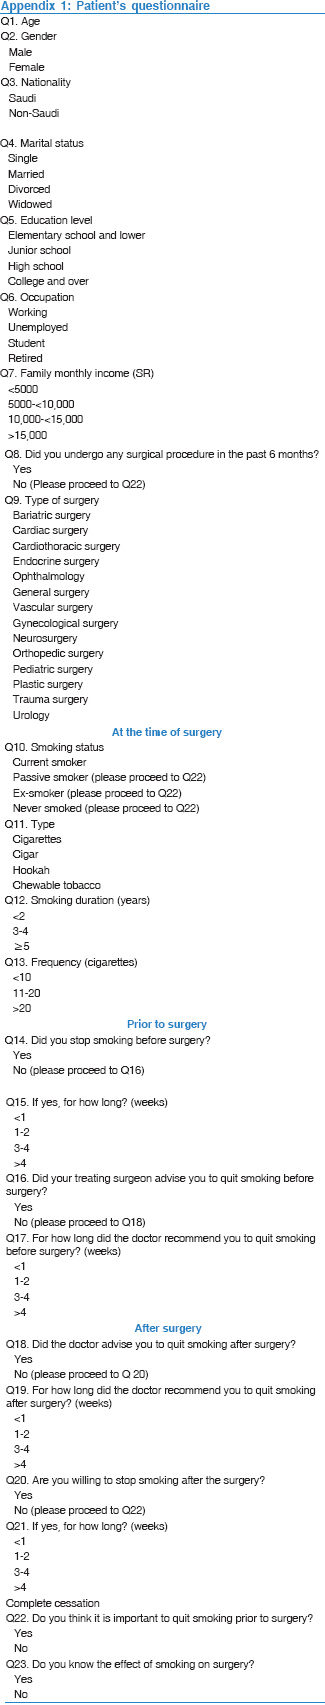 Behavior, knowledge, and attitude of surgeons and patients